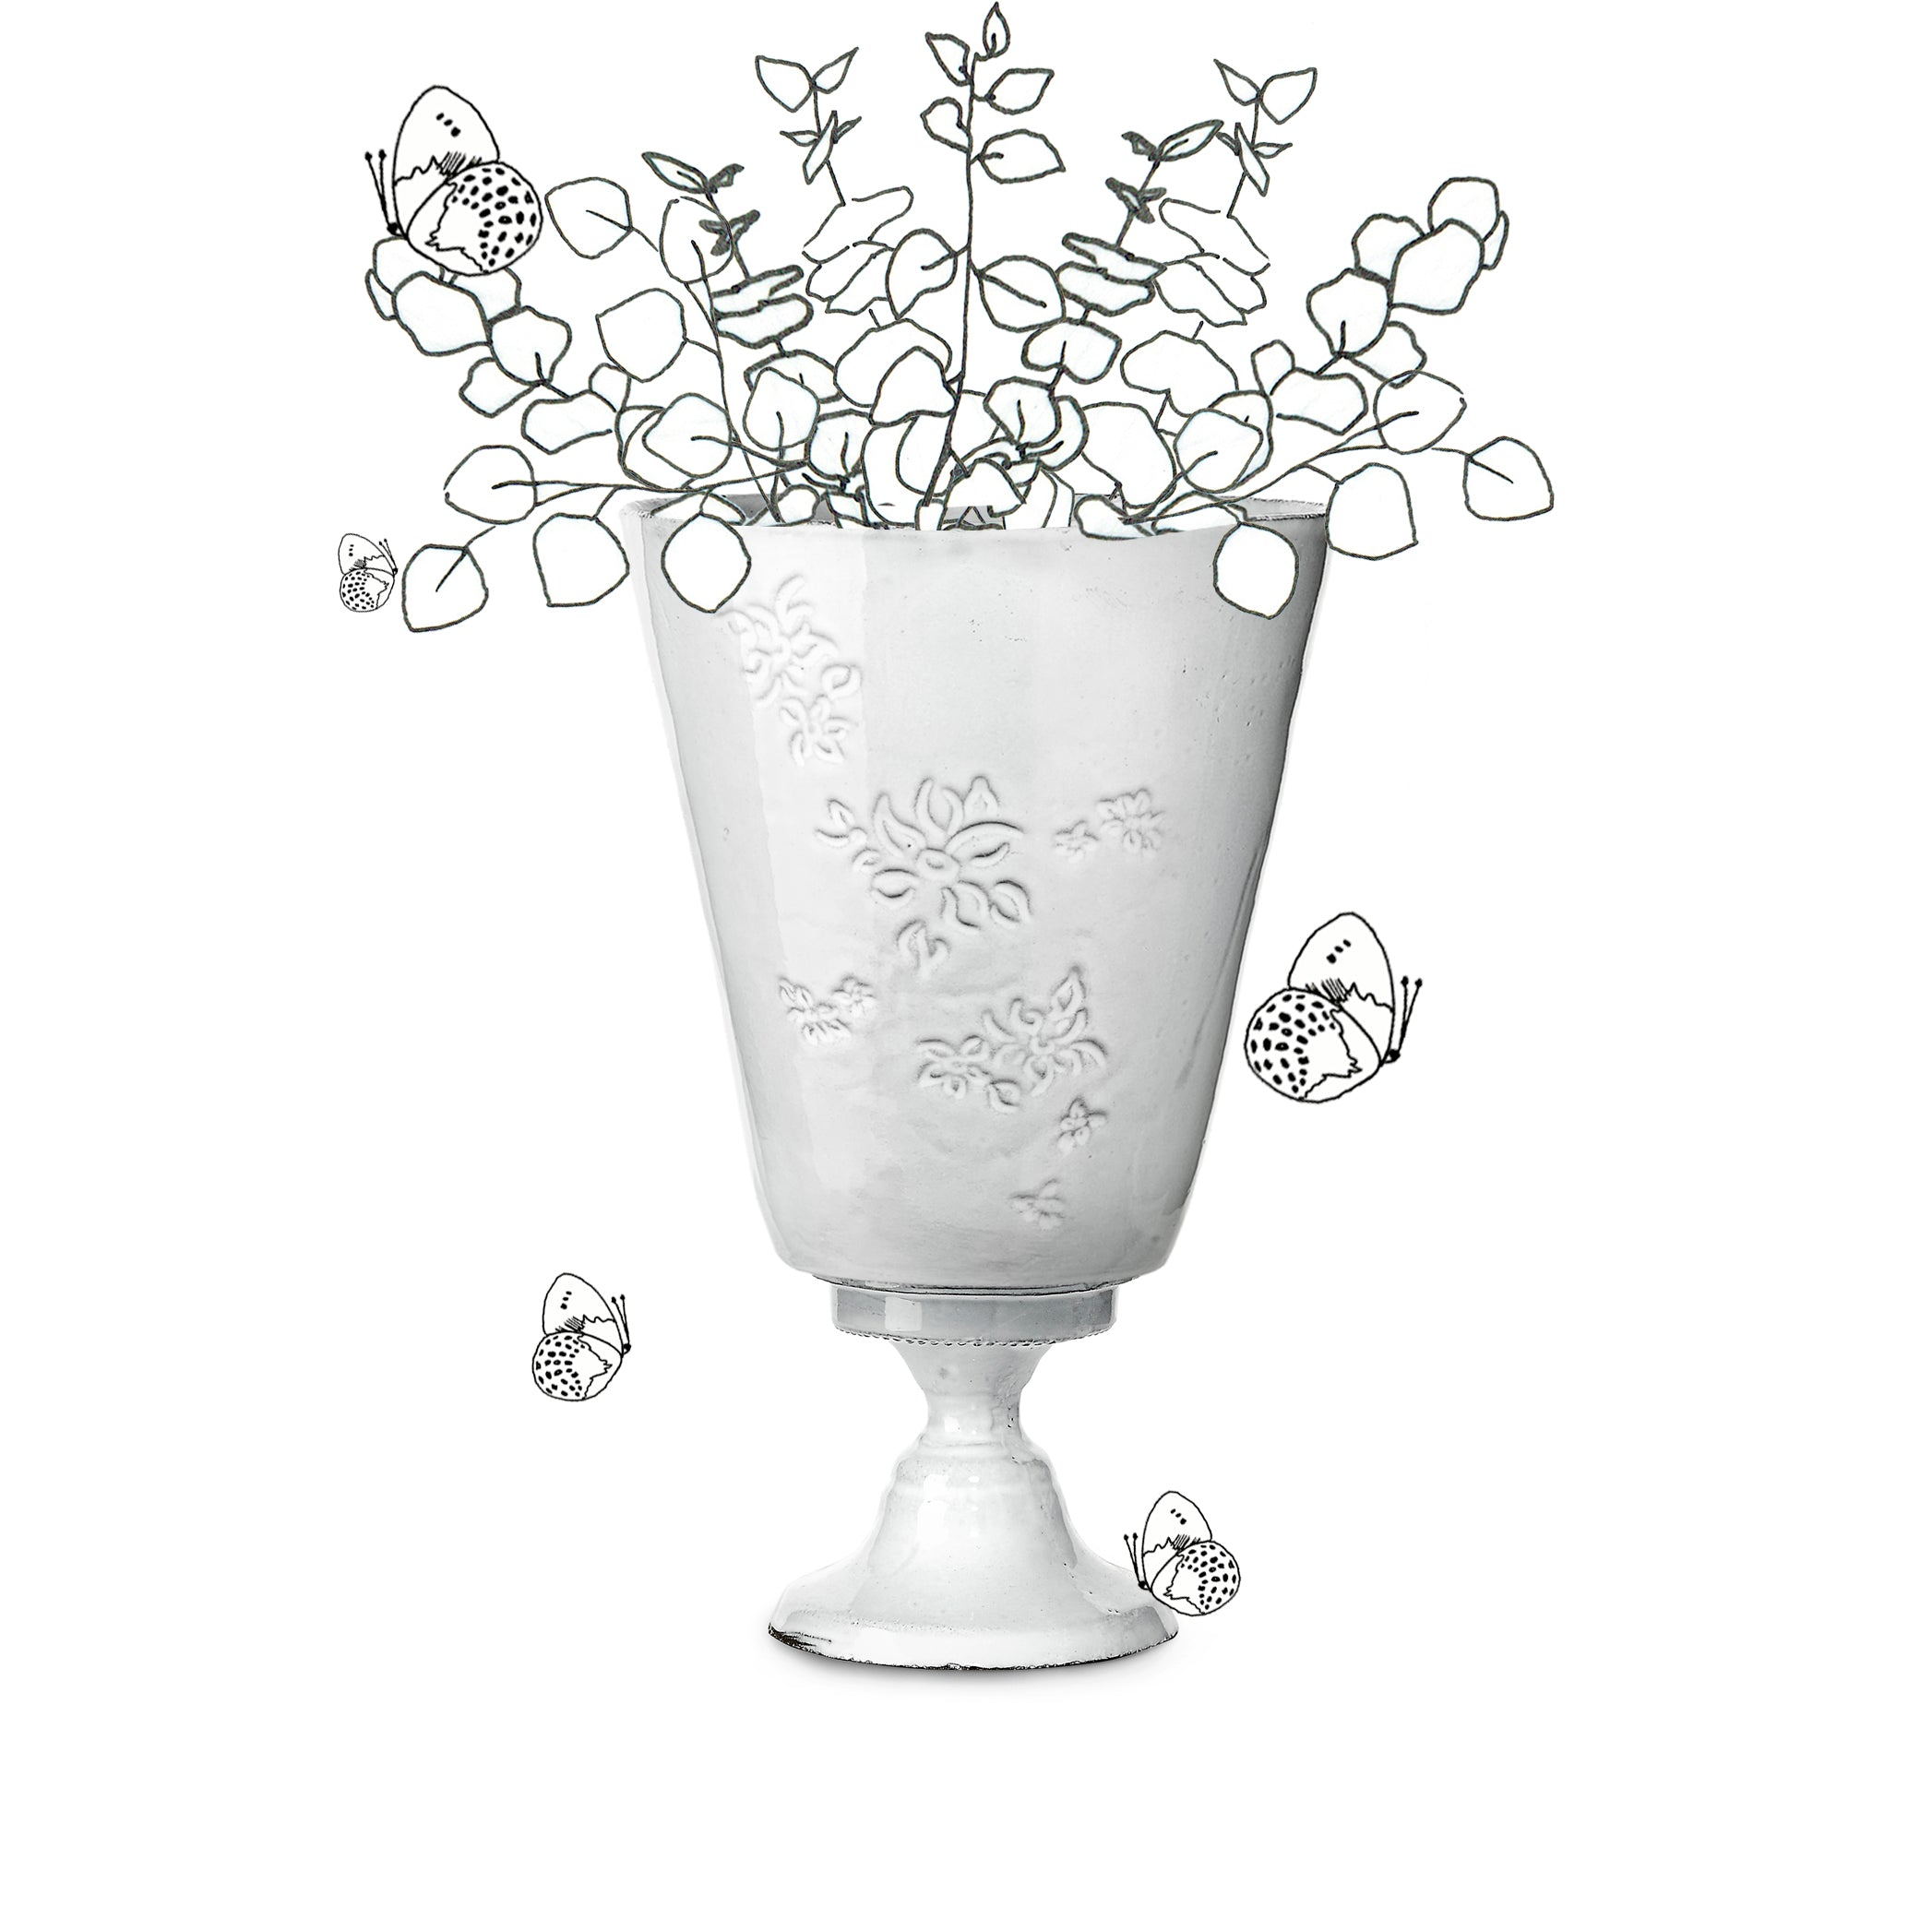 Astier de Villatte x Summerill & Bishop Vase with Falling Flower